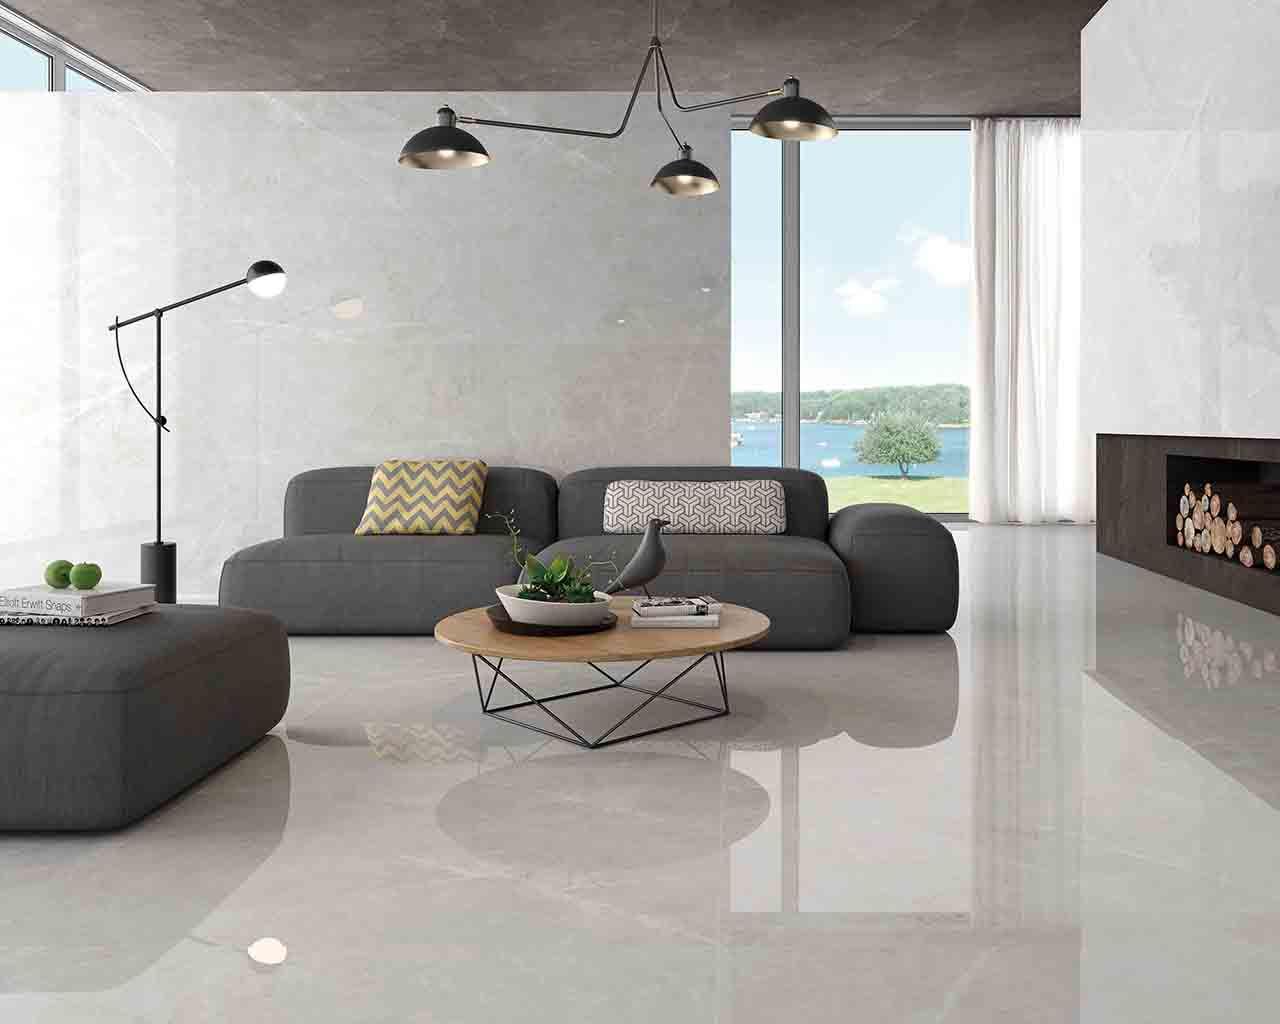 A beautiful living room floor featuring our Crepuscolo Pearl 24 x 48 Porcelain Tile